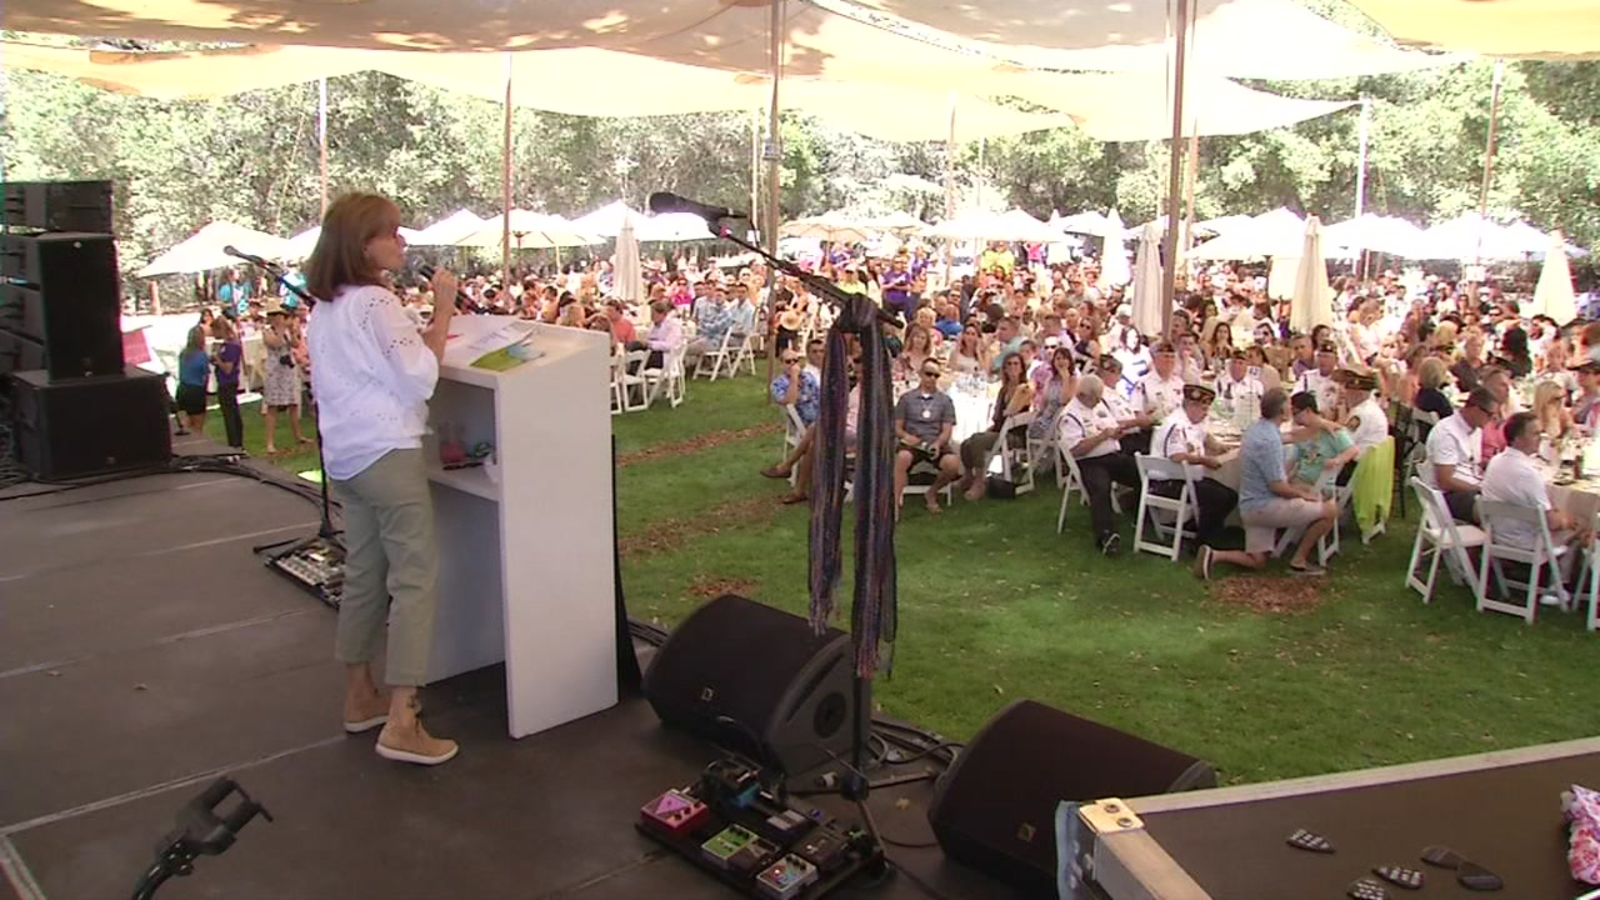 The Taylor Family Foundation S Day In The Park Fundraiser Held In Livermore Abc7 San Francisco